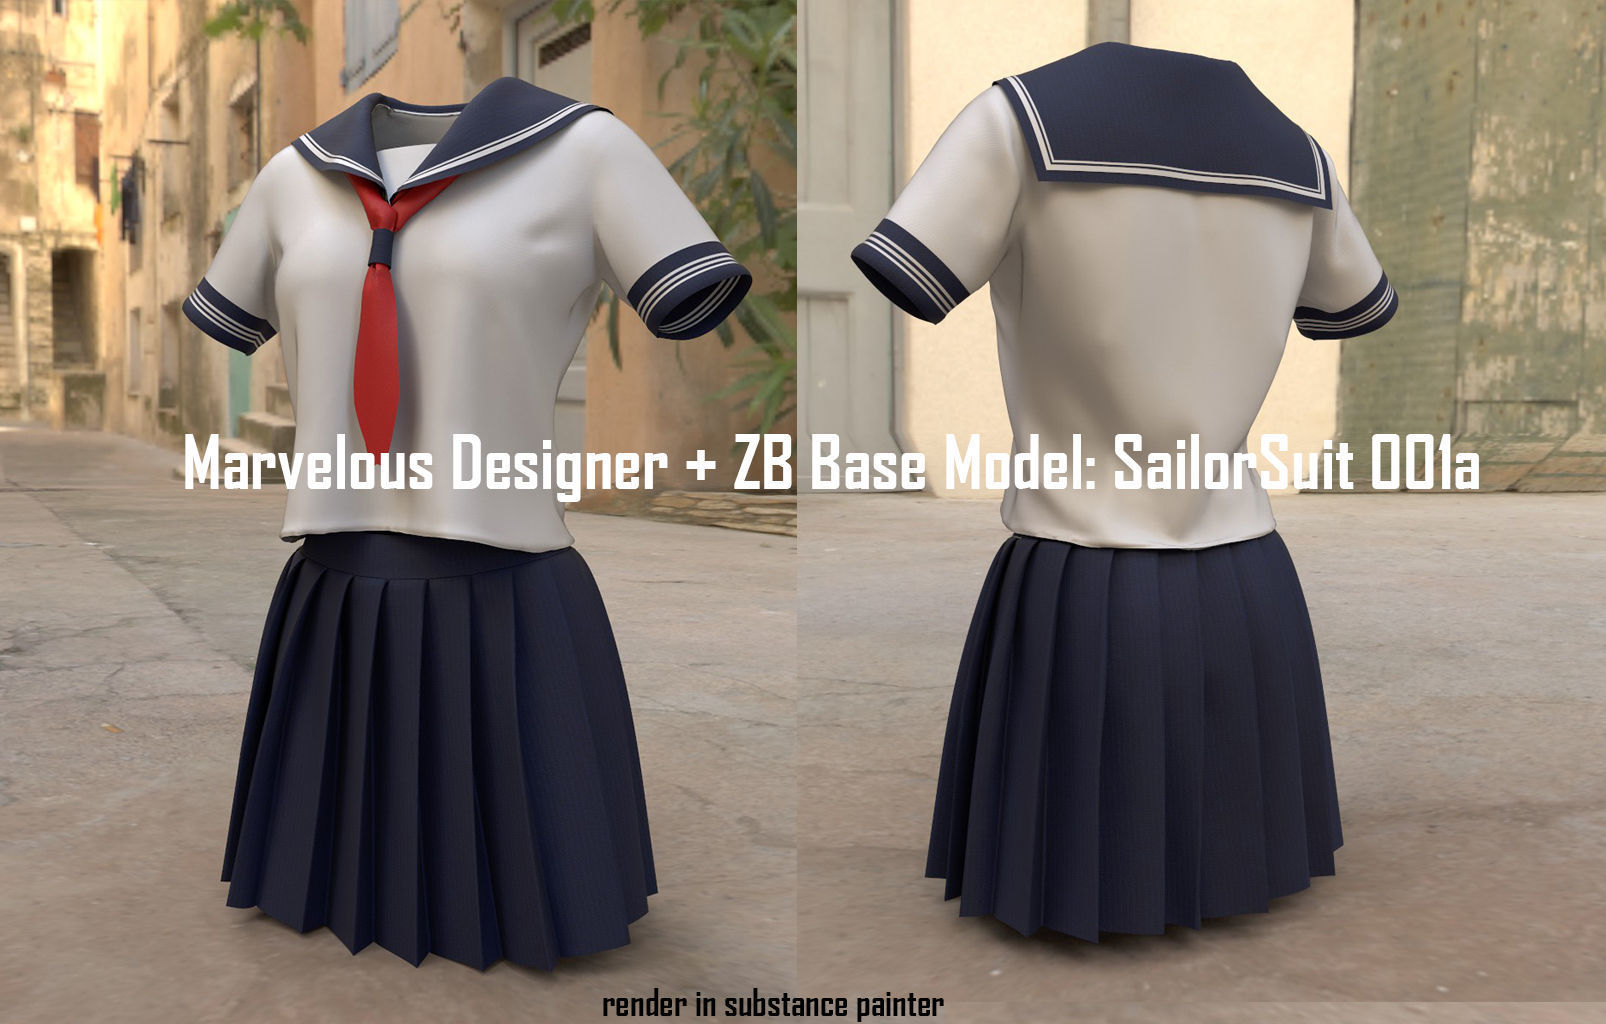 Marvelous and ZB Base Model Japan Sailor Suit F001a